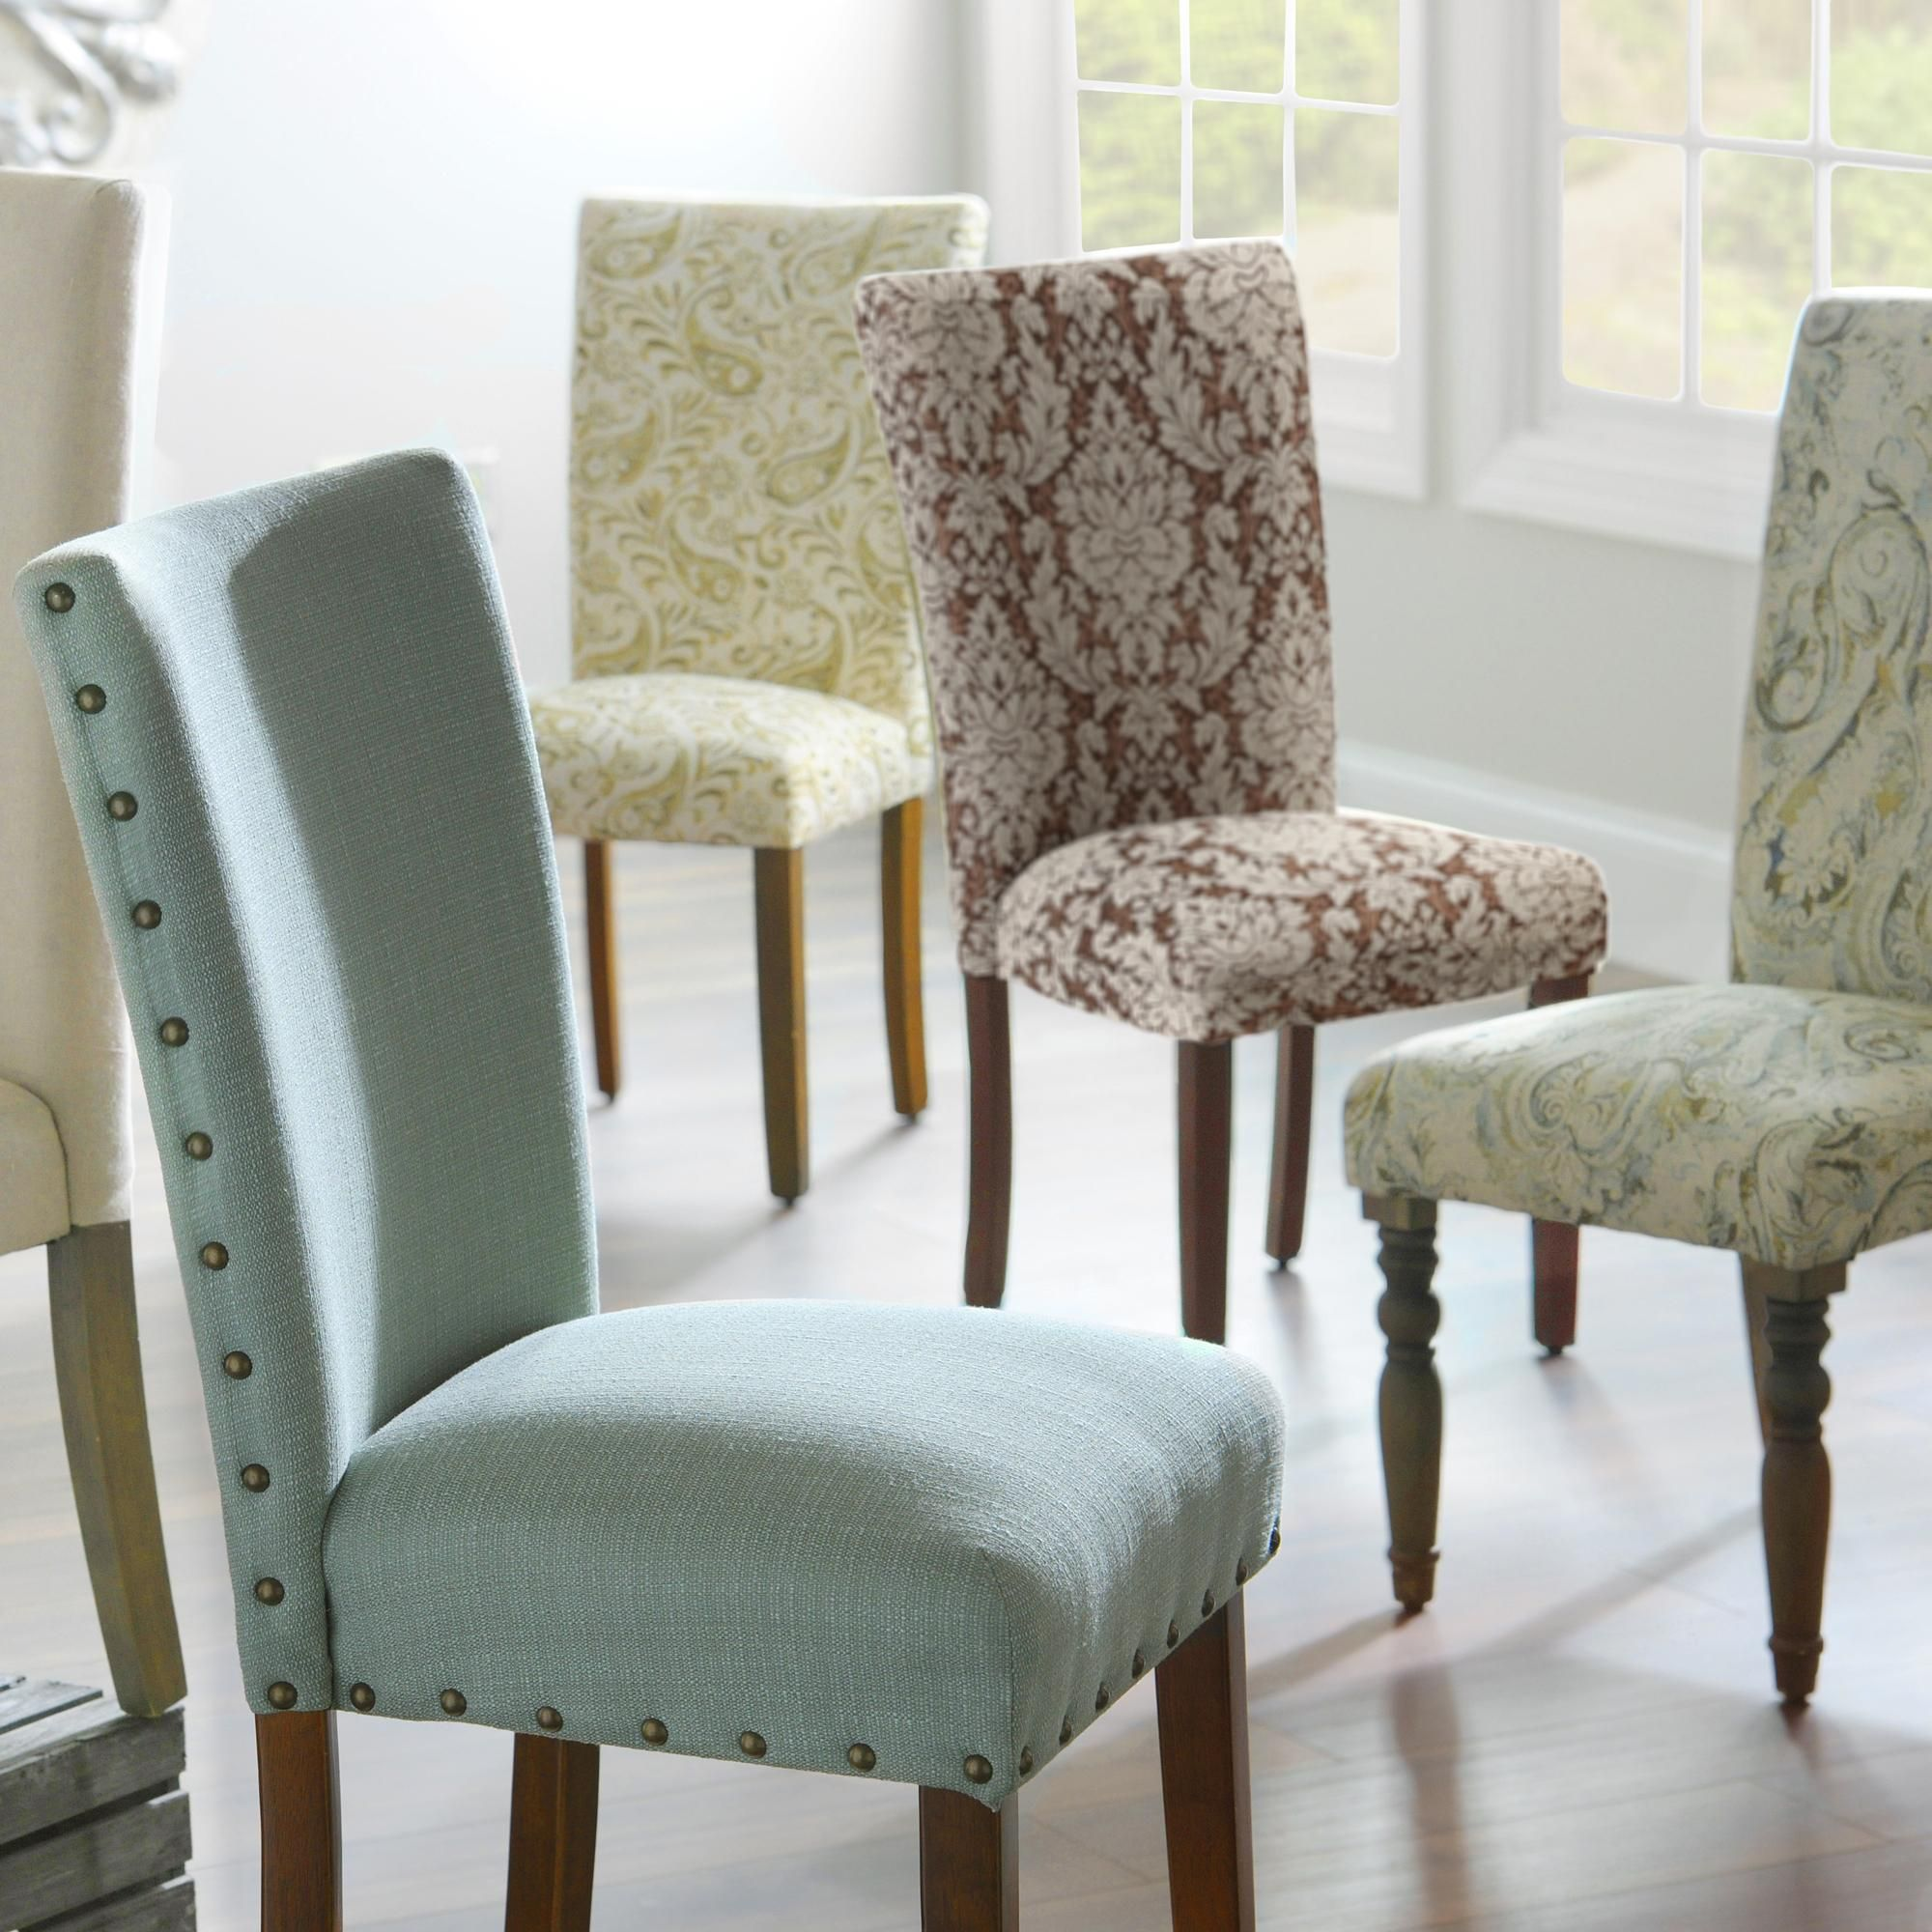 Our Very Popular Parsons Chairs Are On Sale Save 20 Off